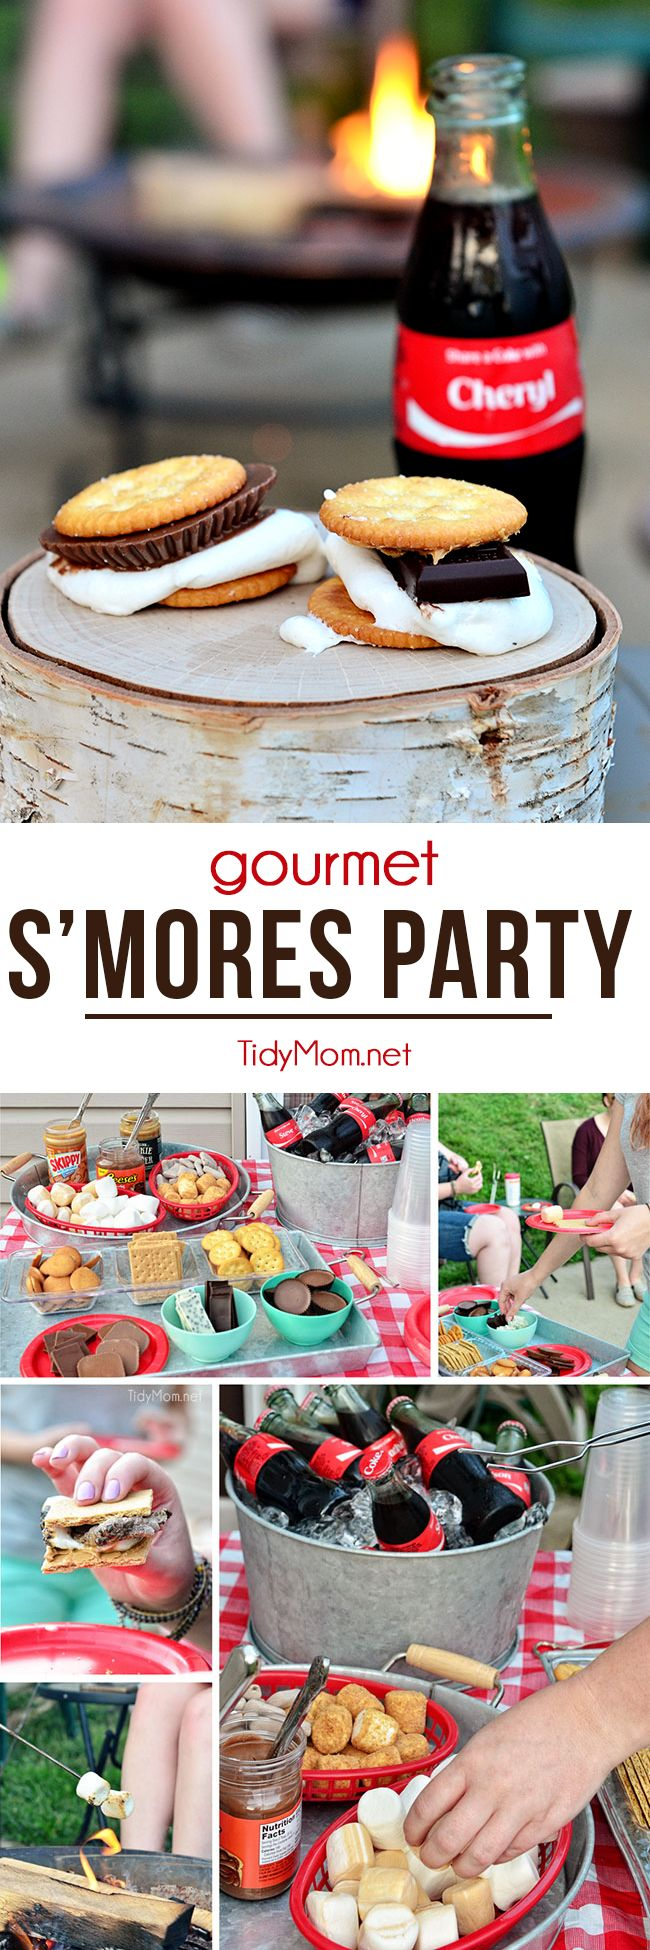 """Everyone loves roasting marshmallows over a bonfire, but this time the nostalgic activity get's a fancy twist with a gourmet make-your-own s'mores party! at TidyMom.net..""""Have you had s'mores on crackers yet? The sweet and salty combo is fabulous! I may never eat them on a graham cracker again! - try with different marshmallow flavors and candy bars for GOURMET S'MORES """""""